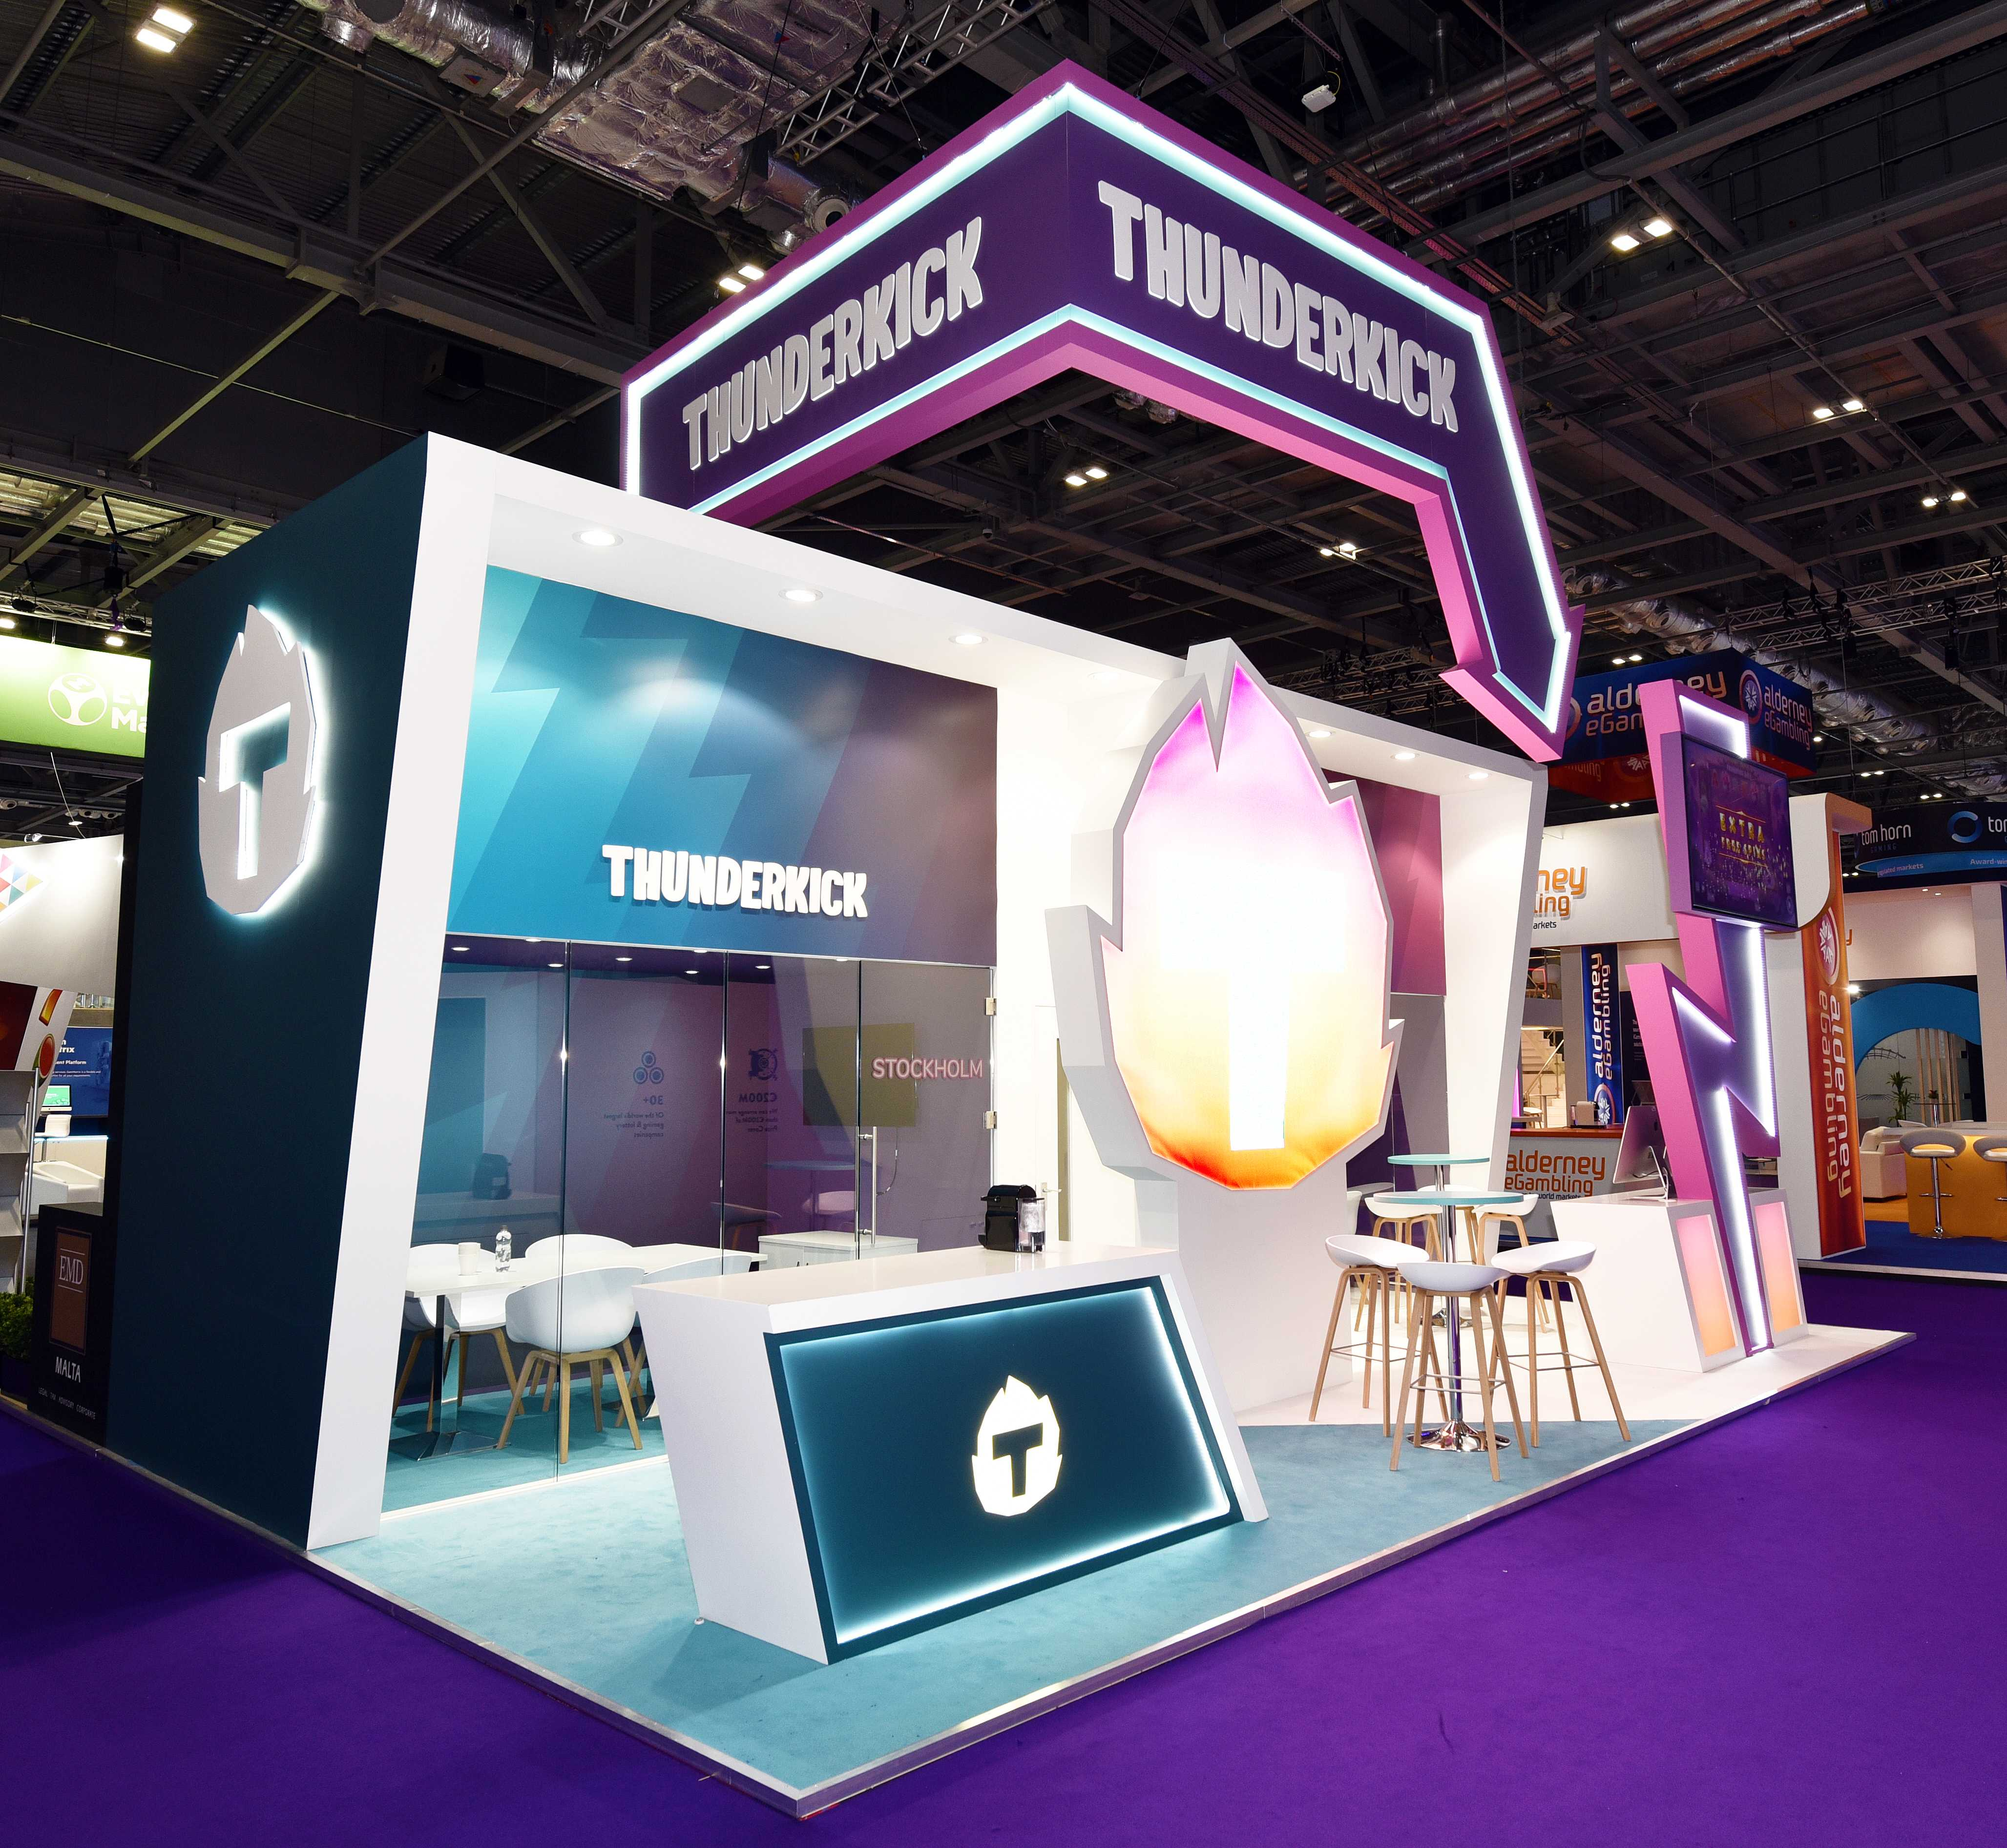 Exhibition stand designer and builderimage1006